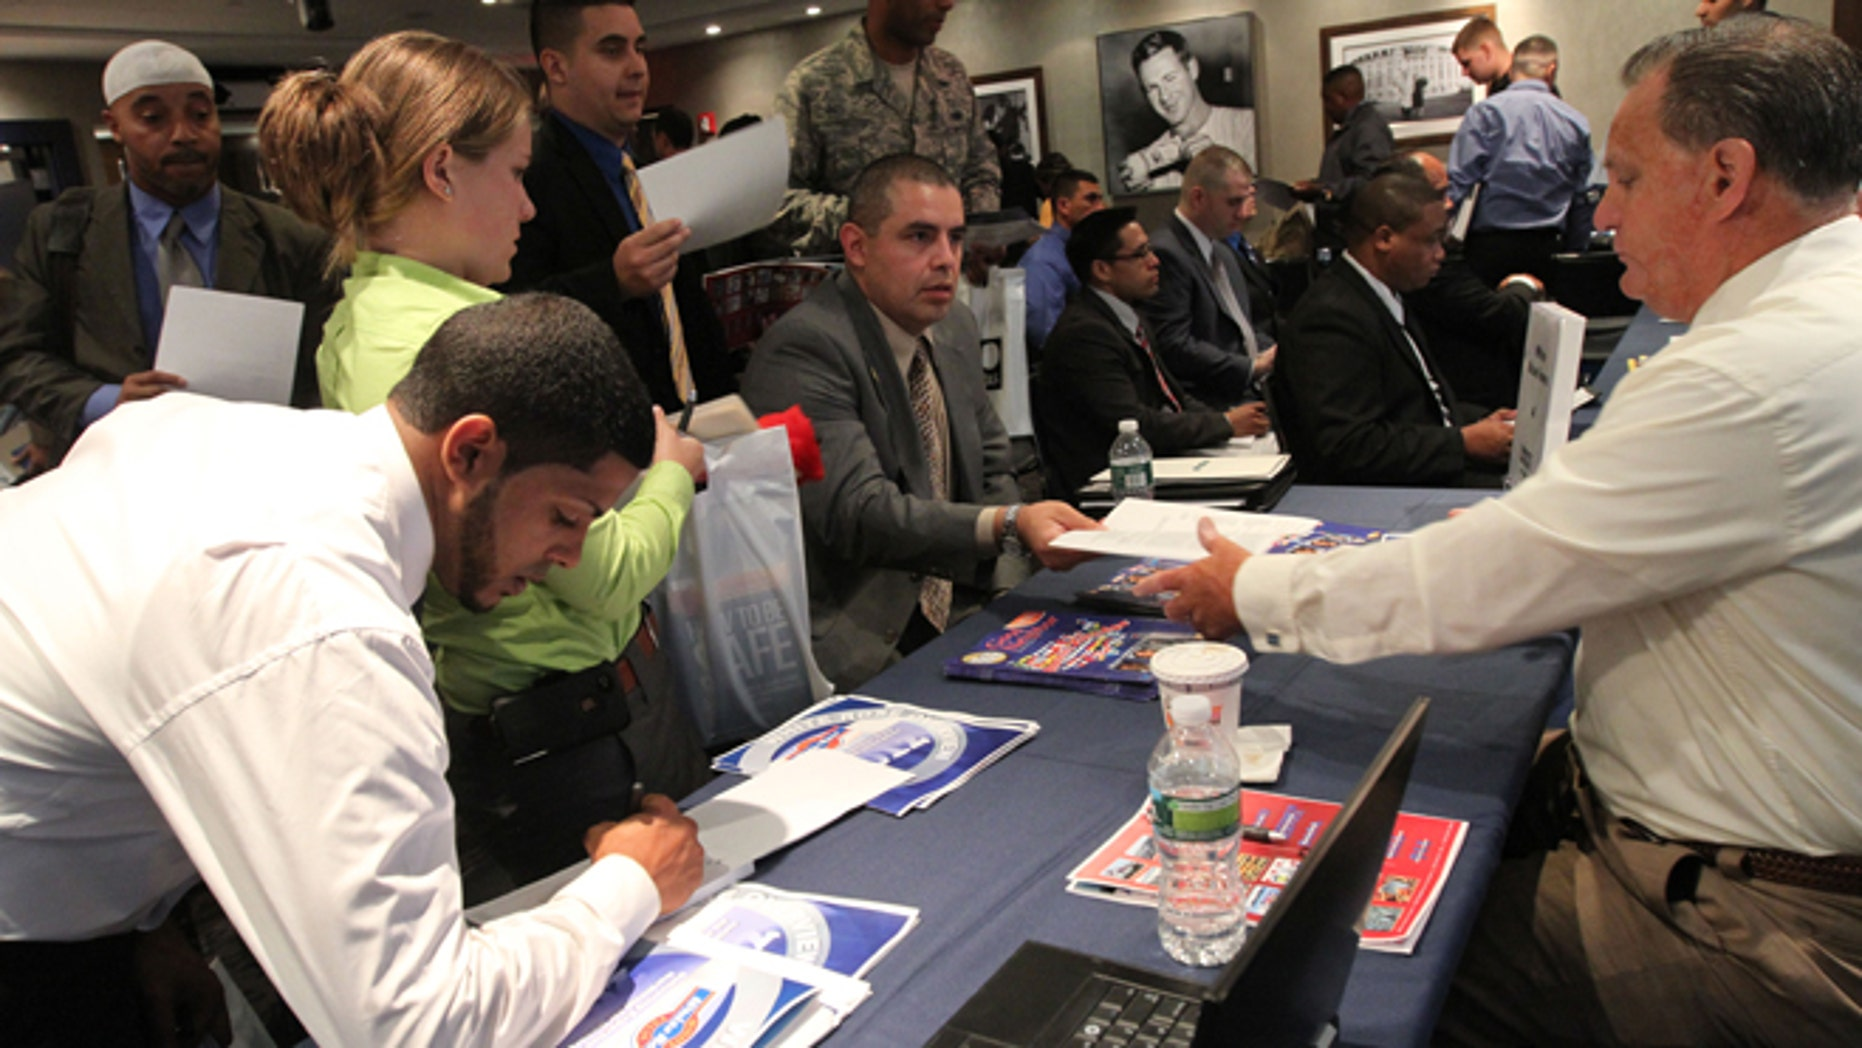 Sept. 28, 2012: Job-seekers hand in resumes during a job fair at Yankee Stadium in the Bronx.